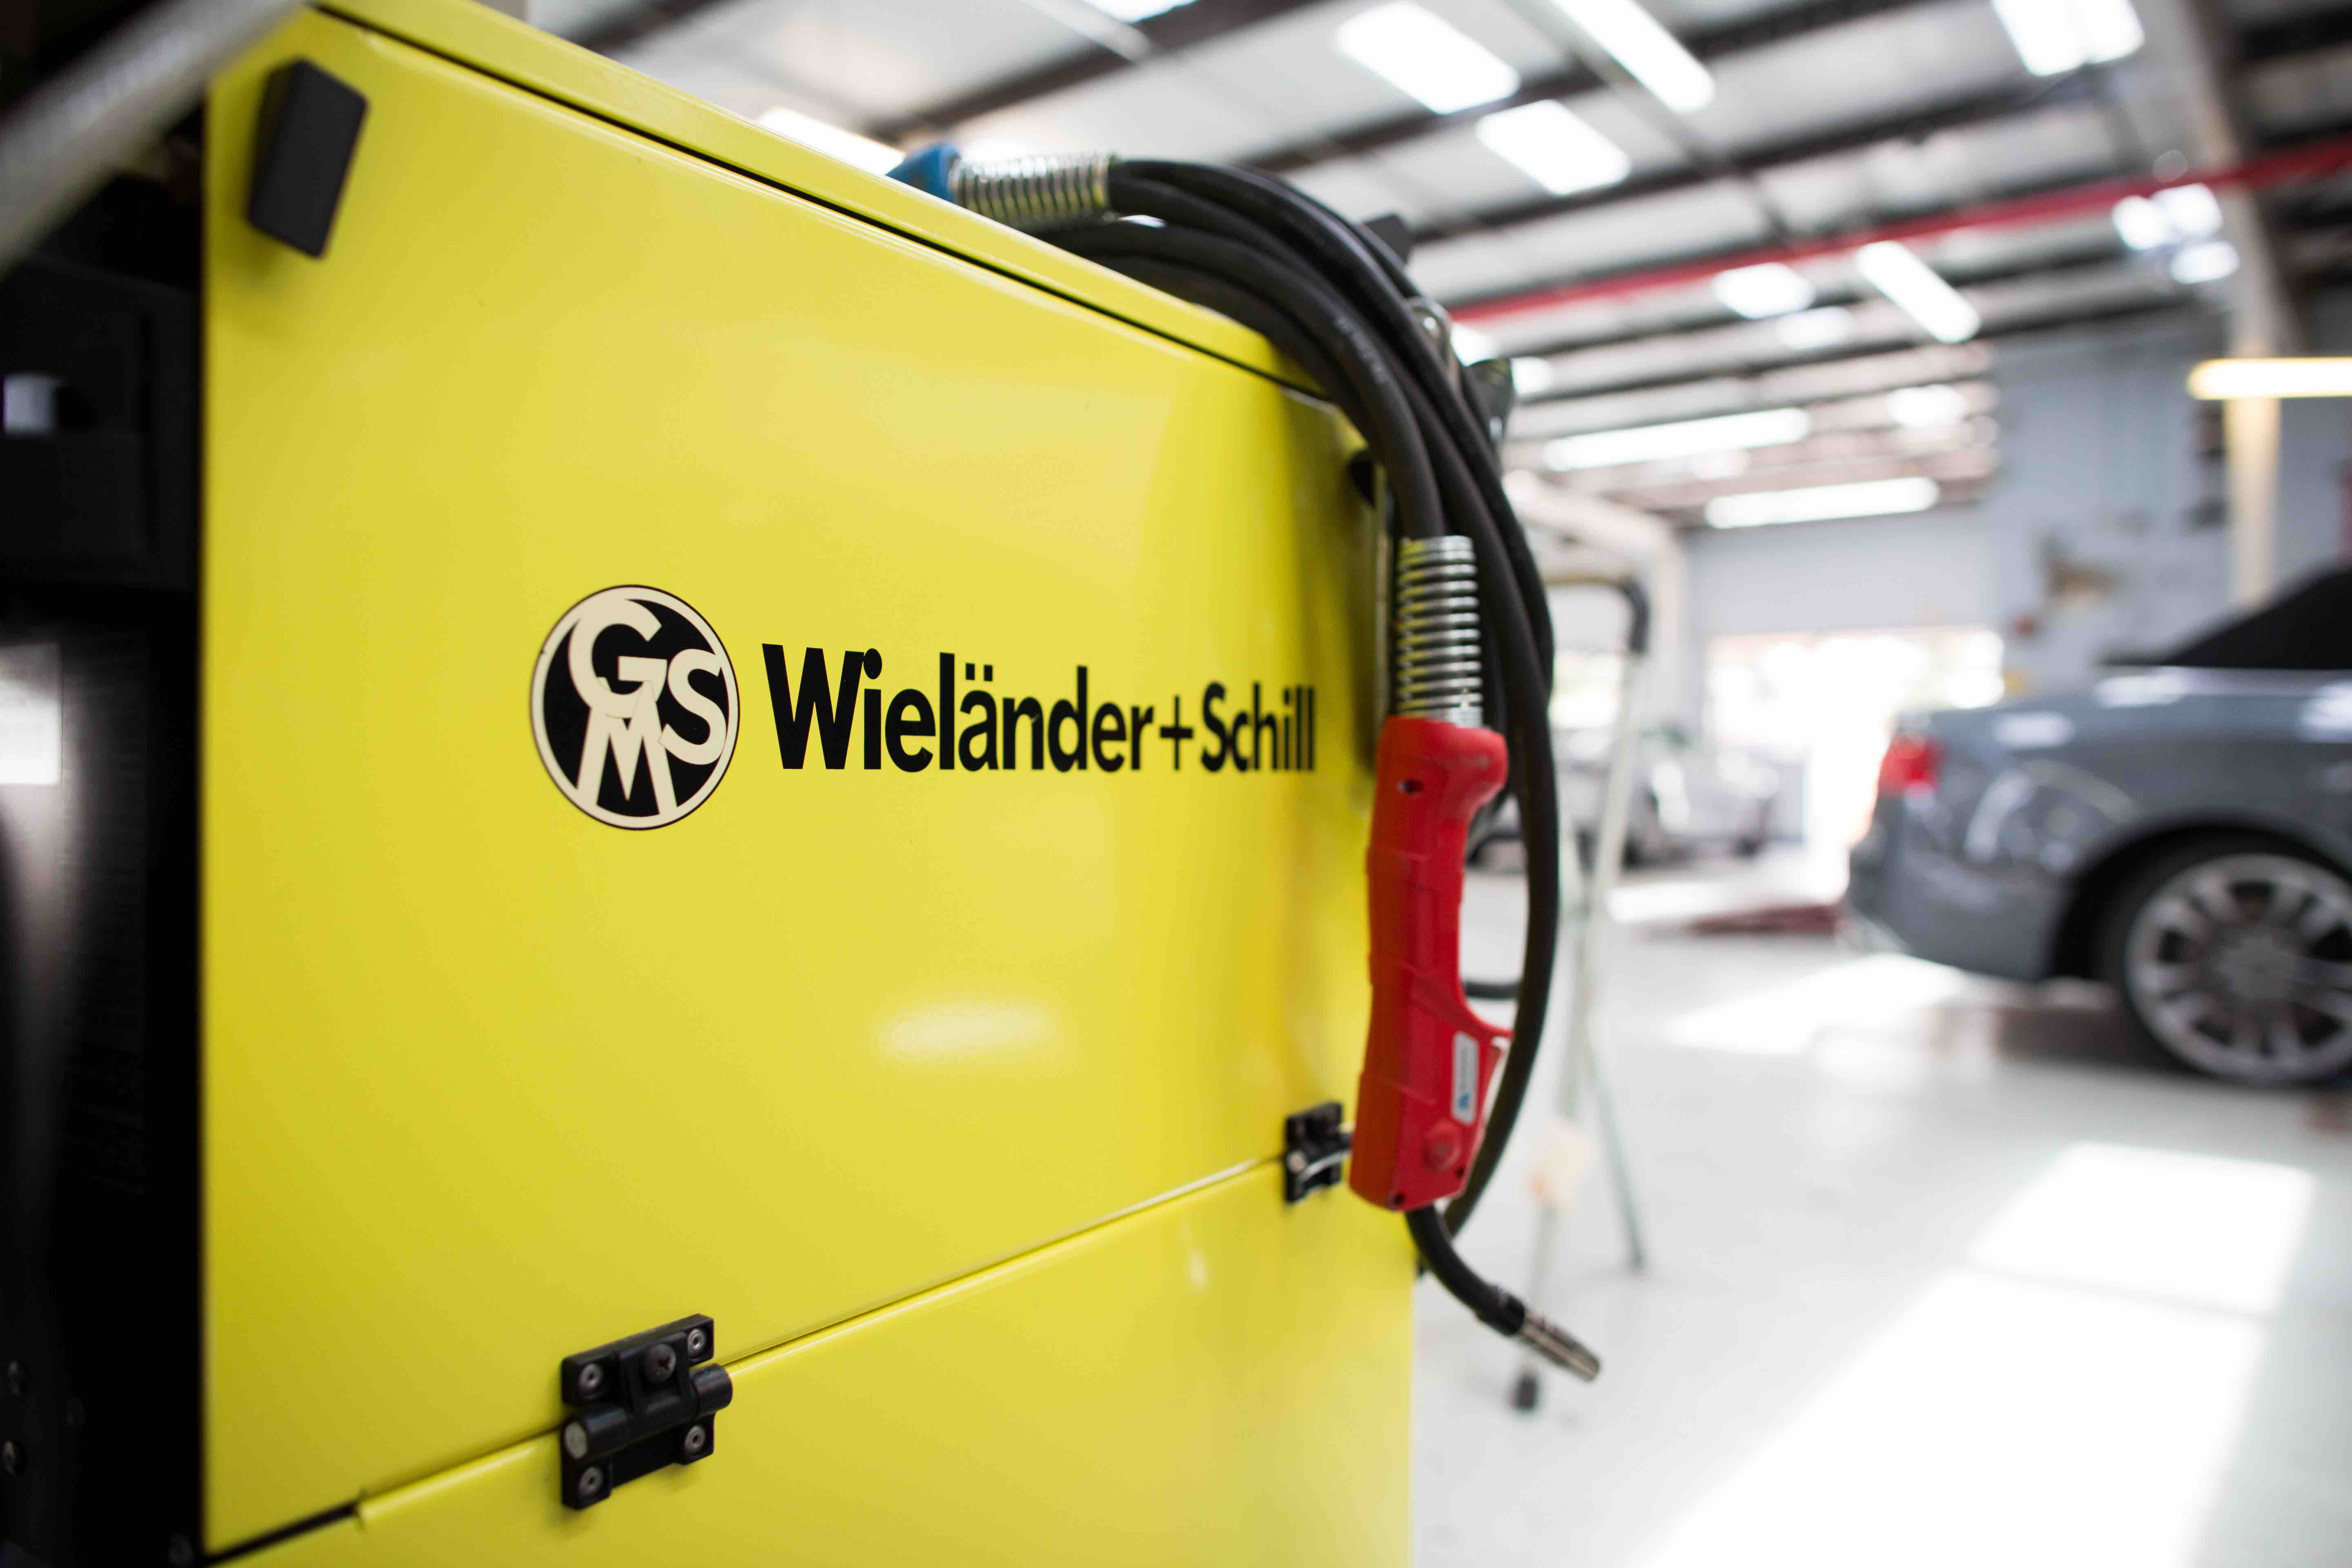 Daya's Wielander+Schill refinish application for auto body repair